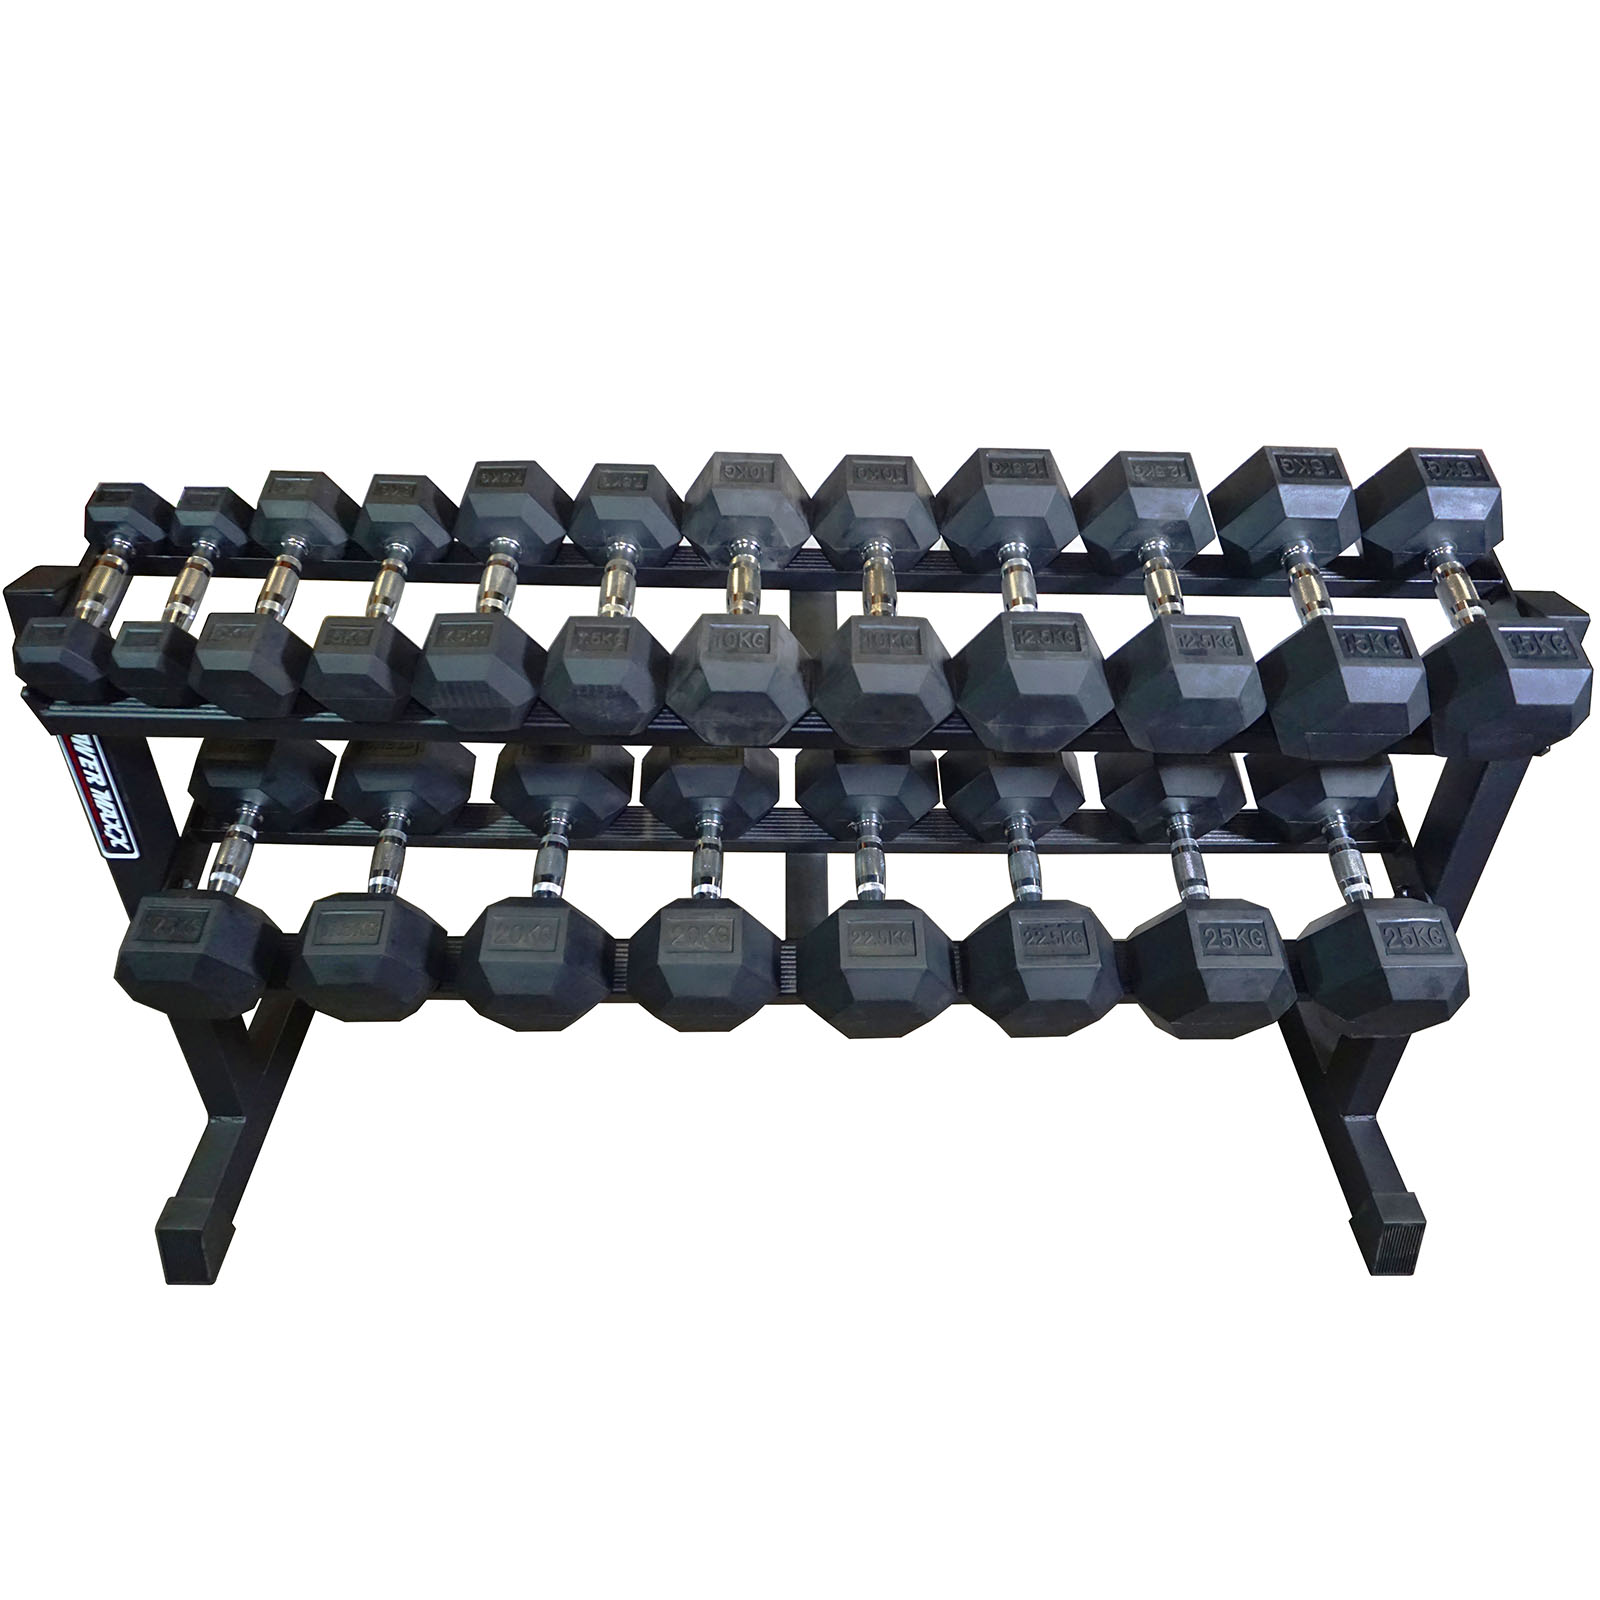 2 5kg To 25kg Rubber Hex Dumbbell Set With Rack Power